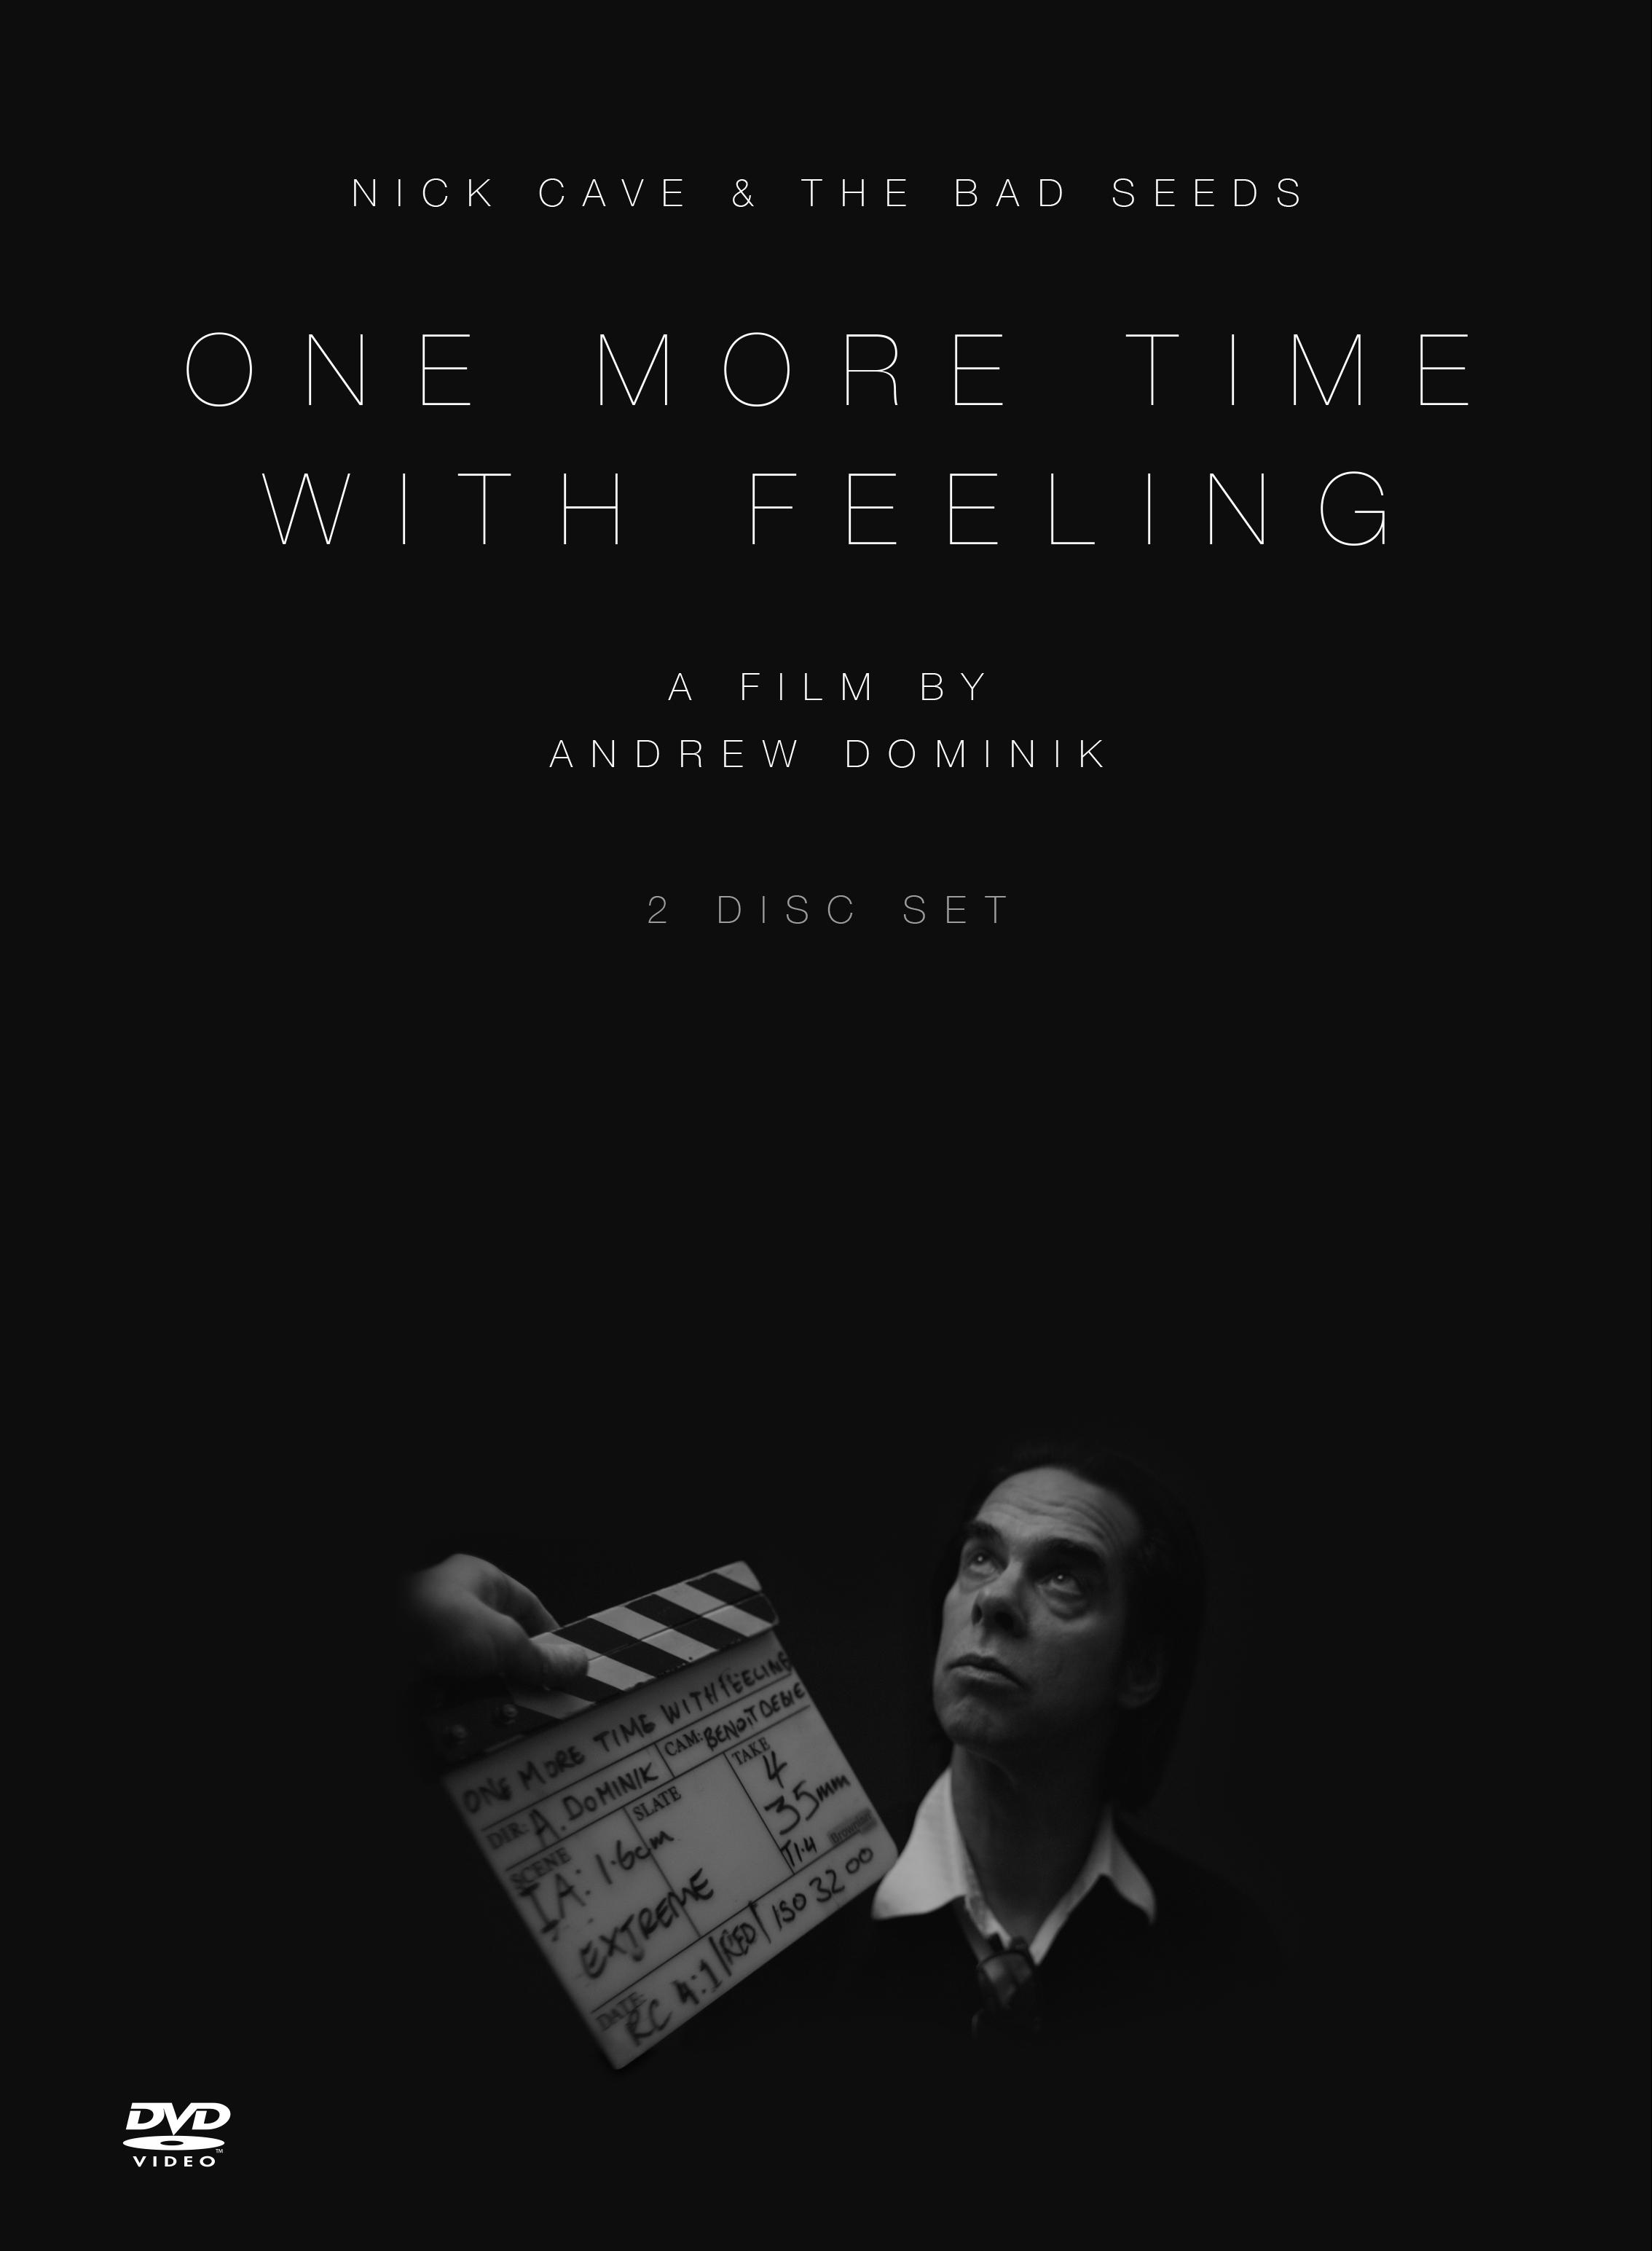 Nick Cave & the Bad Seeds: One More Time With Feeling (2 DVD set)